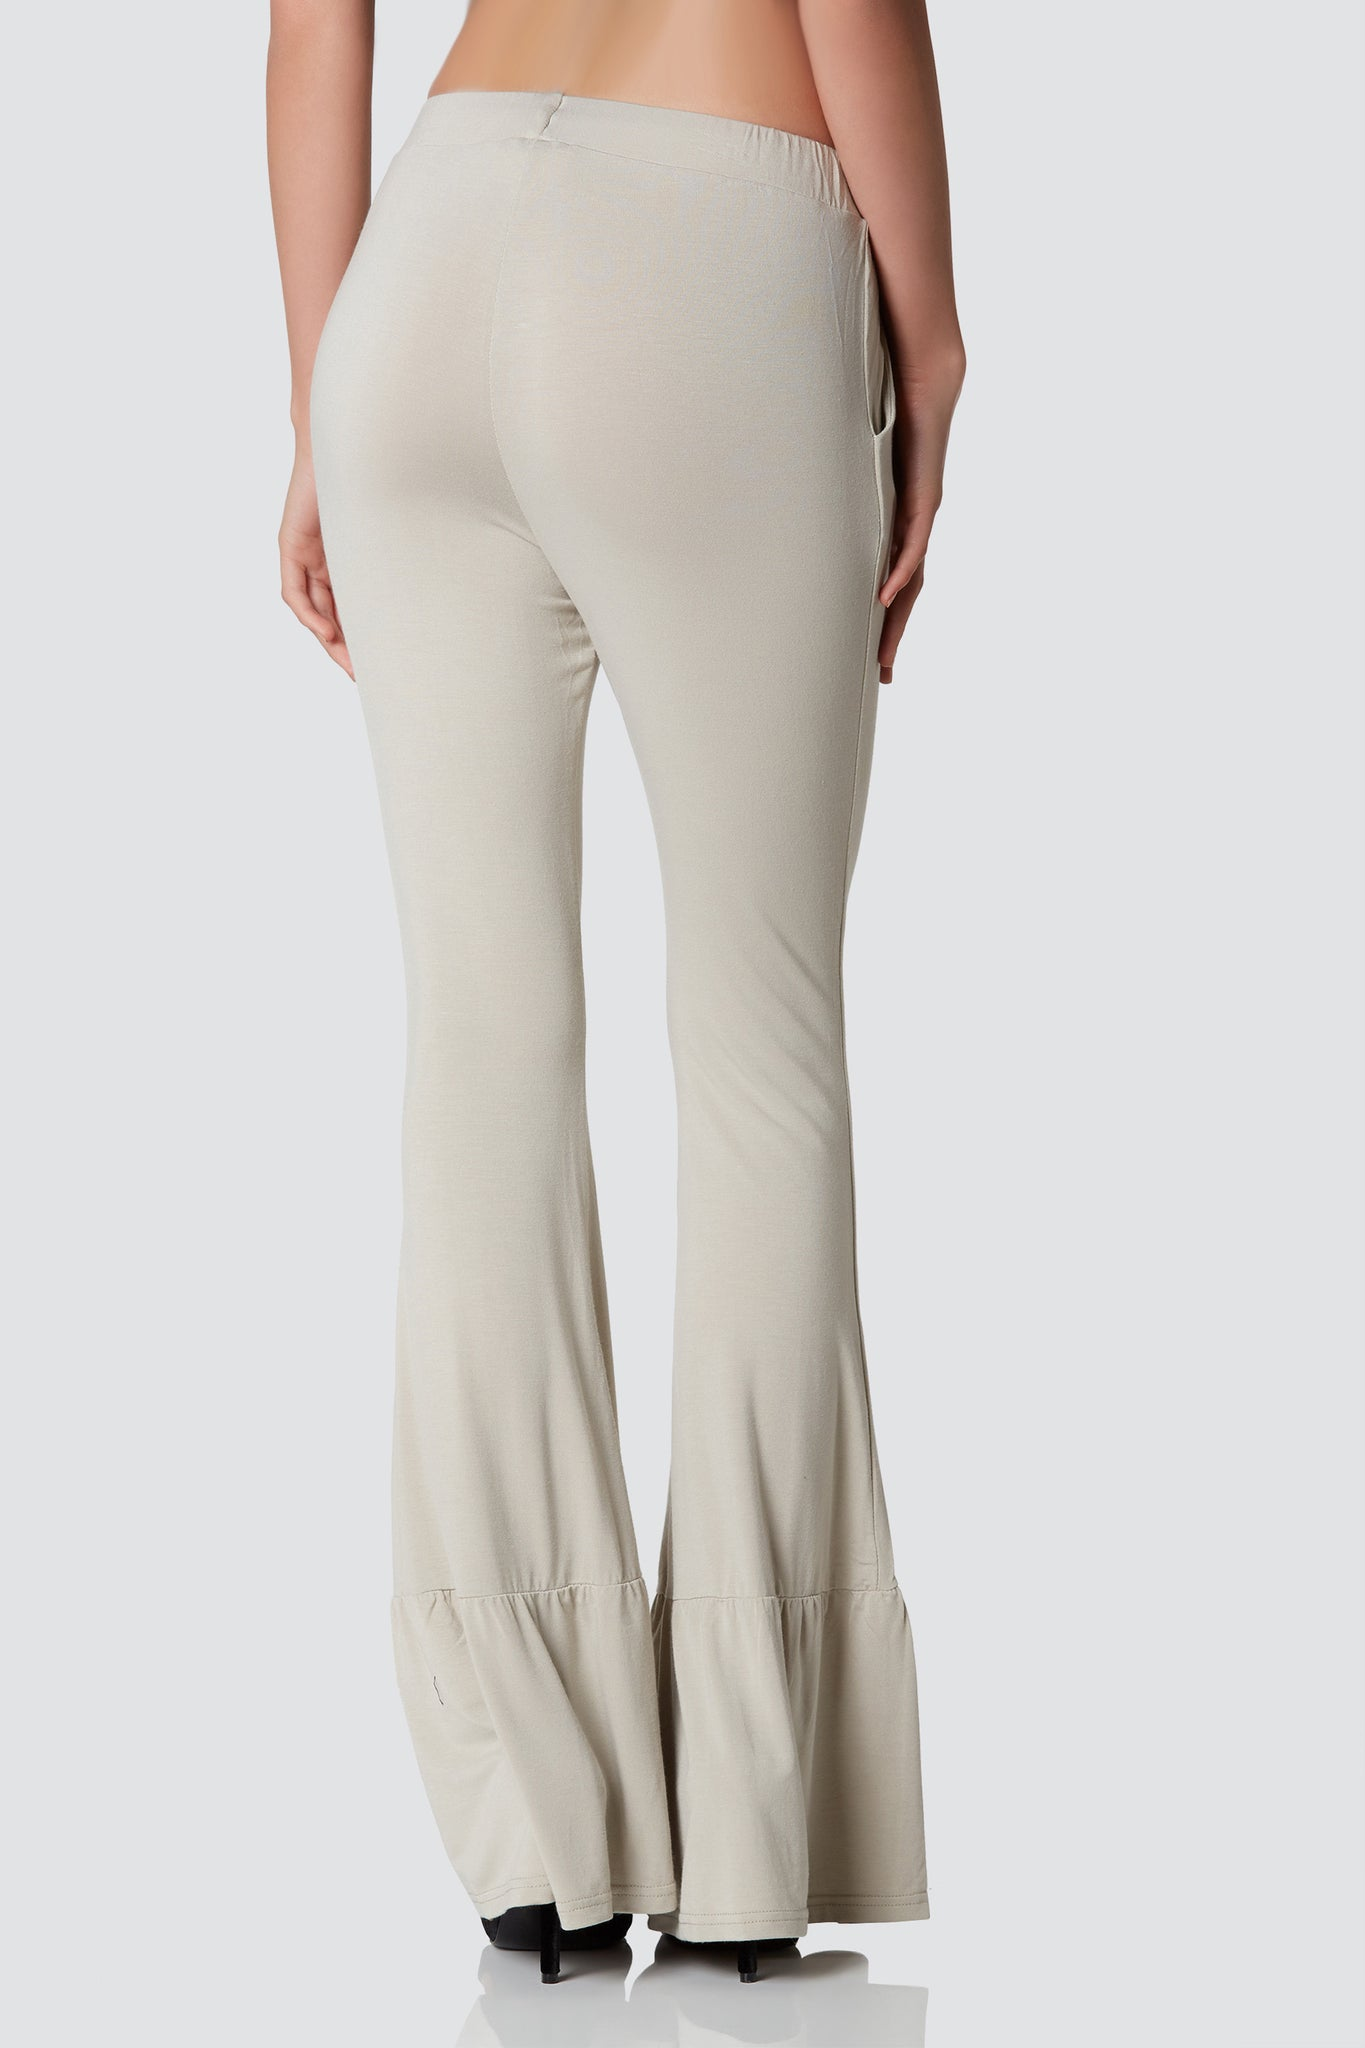 Soft drawstring bell bottoms with side pockets and comfortable stretch.